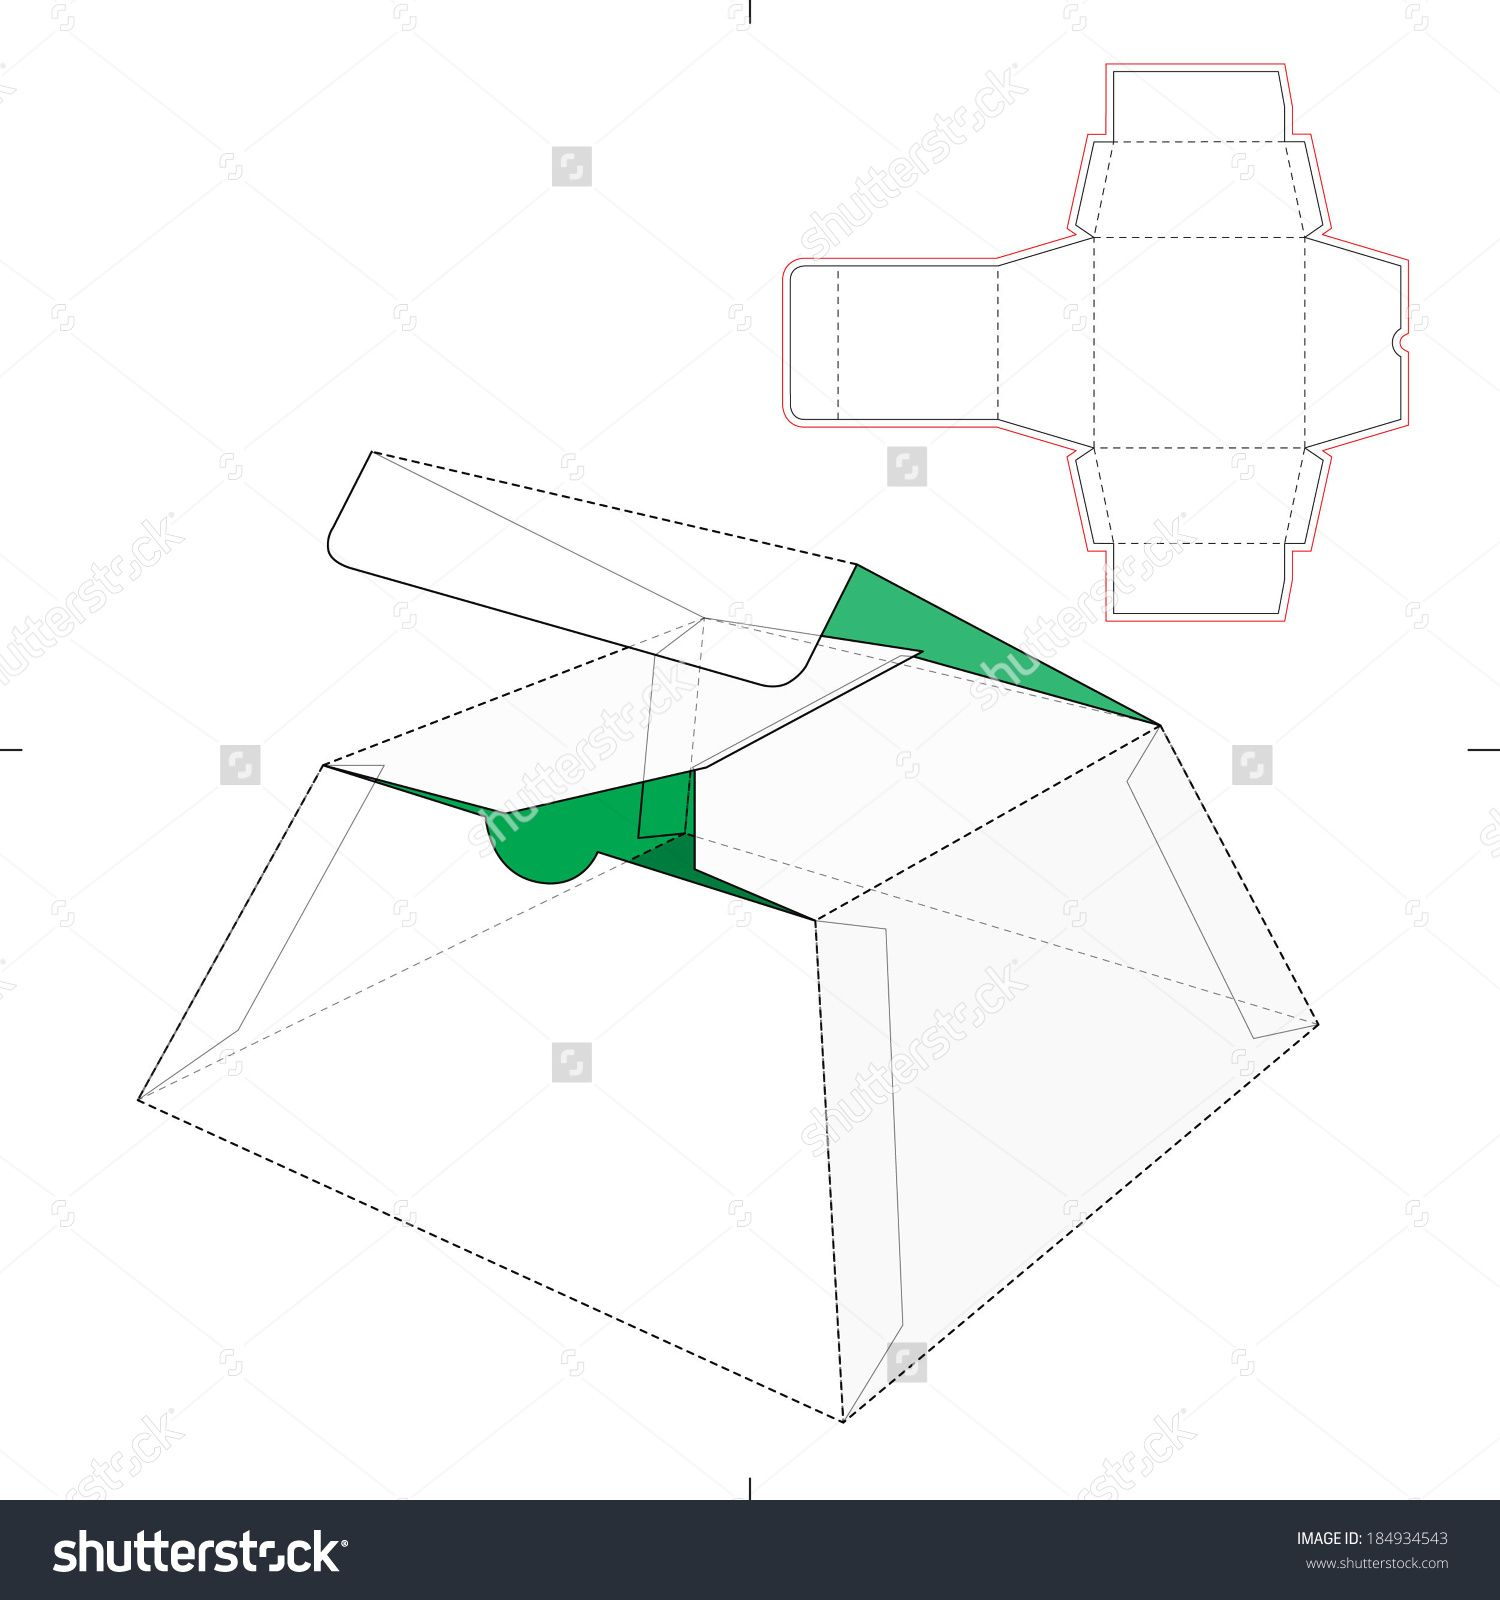 Cake Box With Die Cut Pattern Stock Vector Illustration 184934543